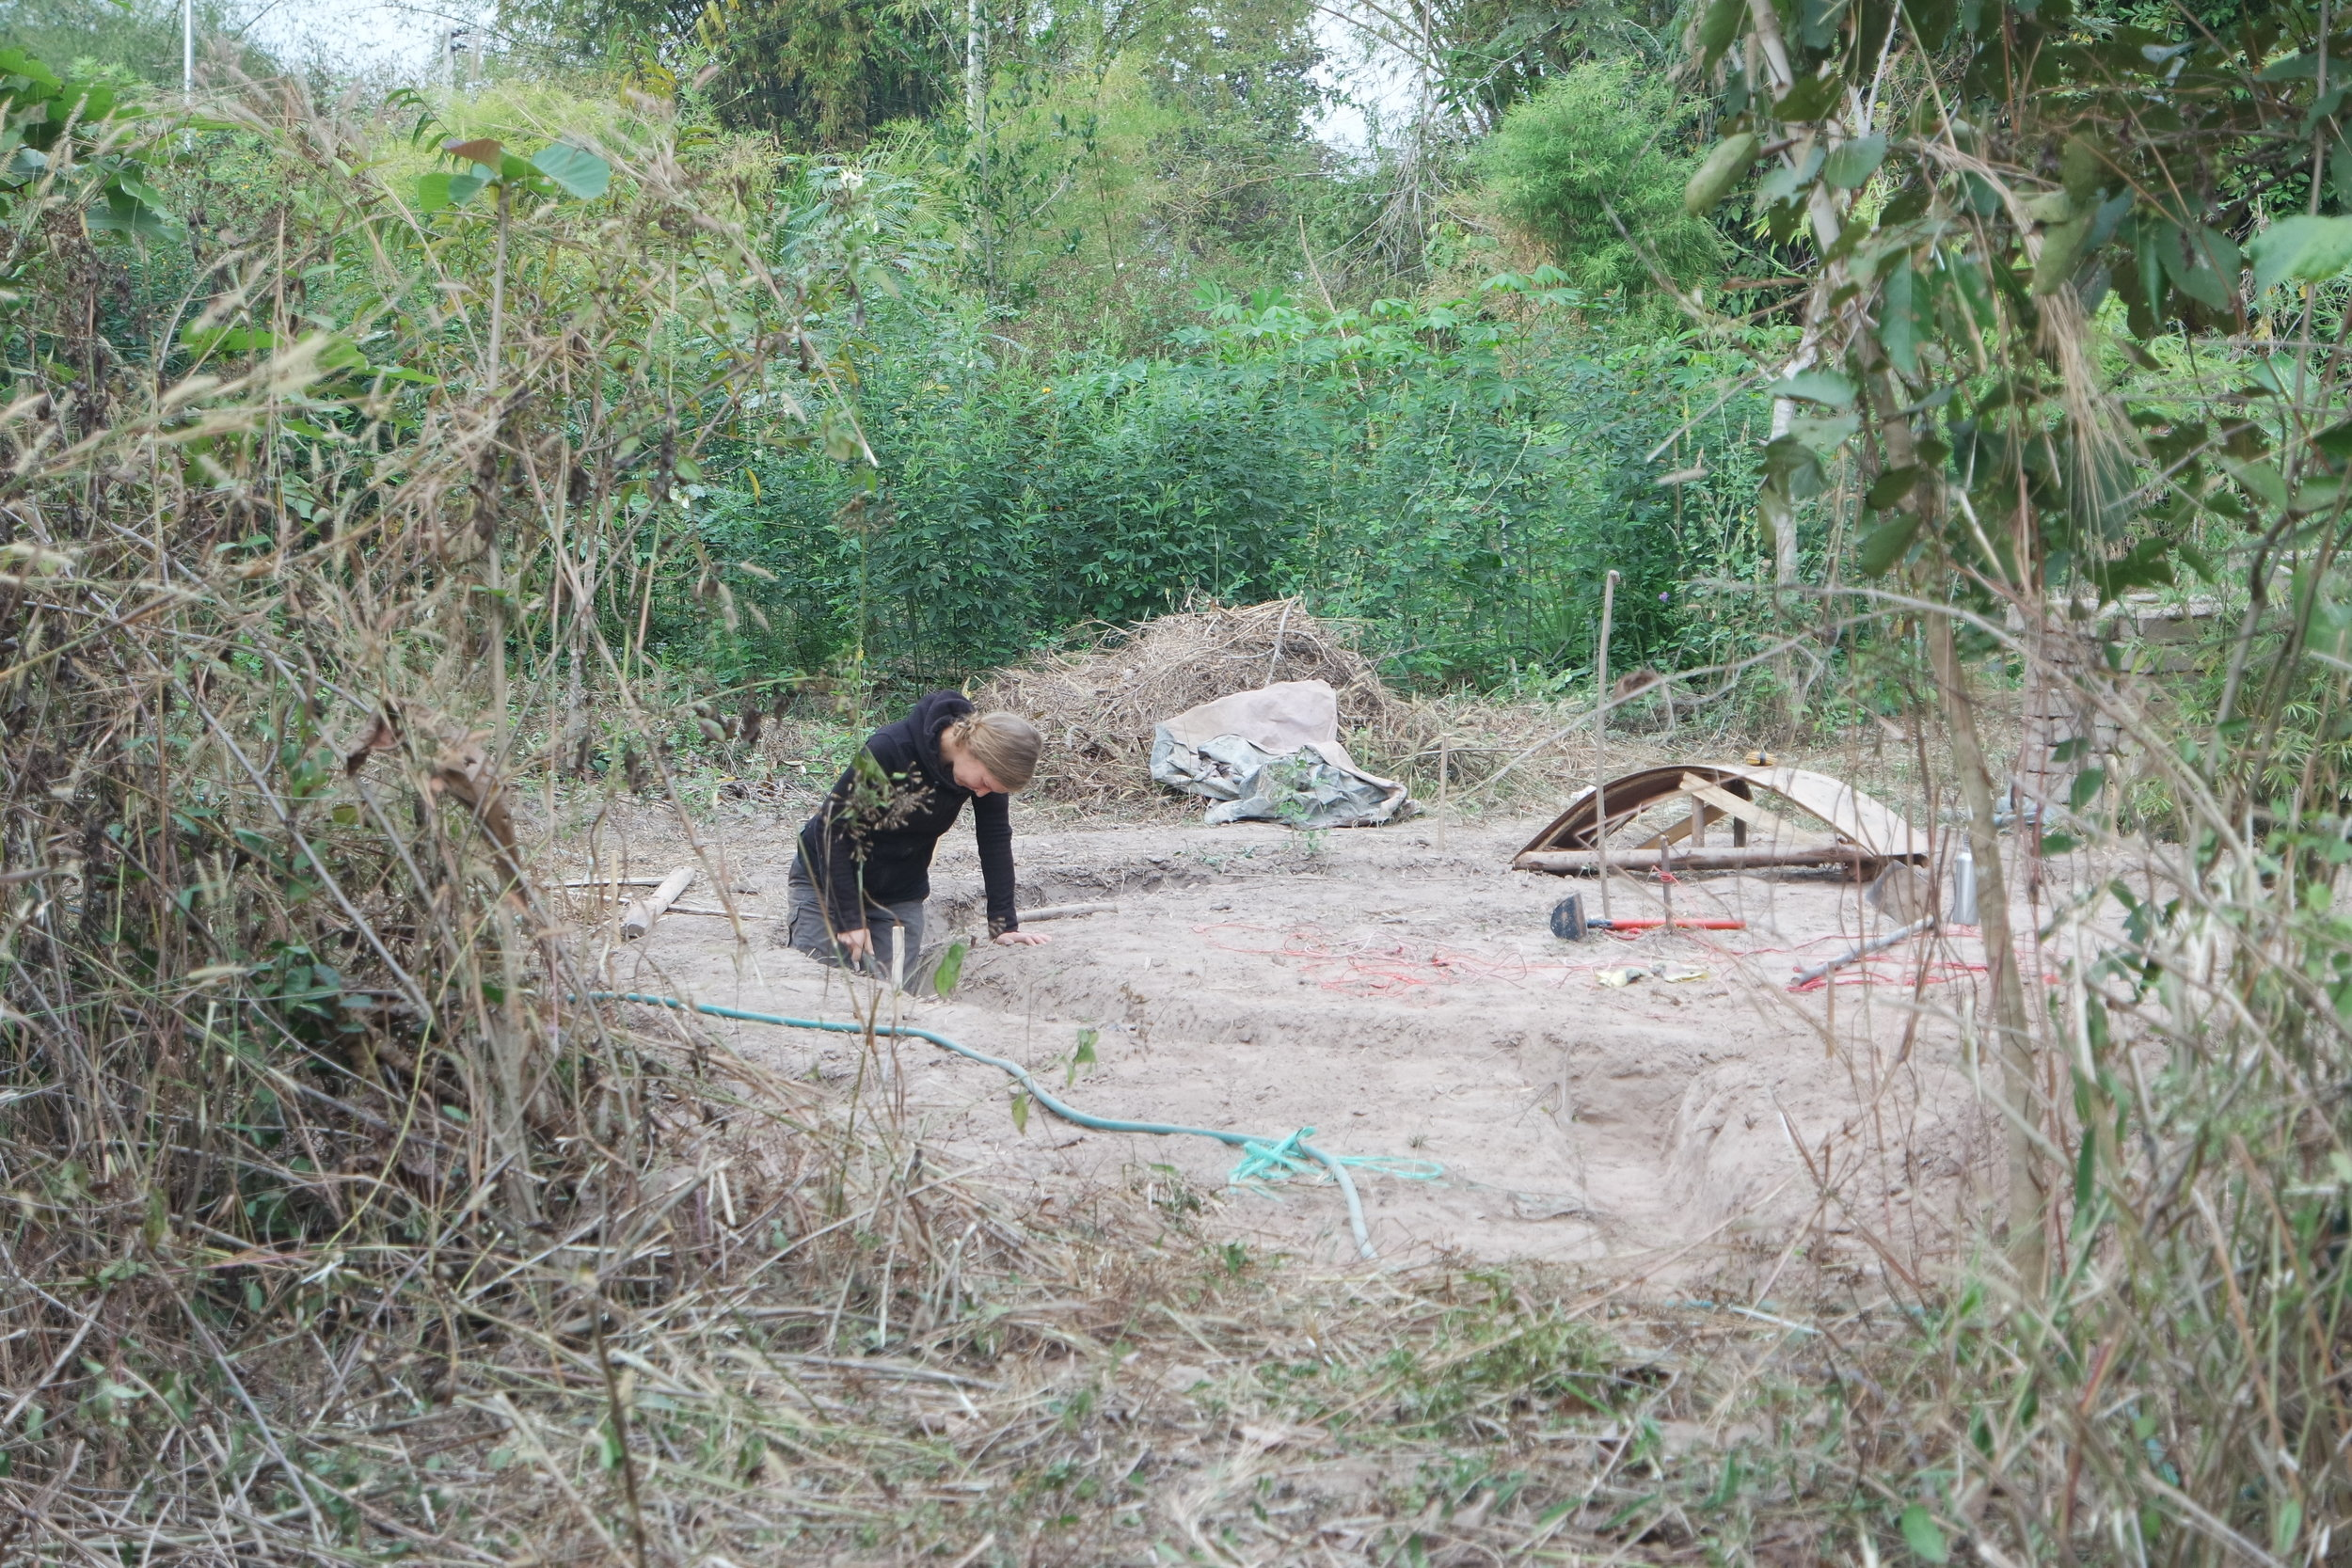 We had to cut down some grasses and plants to get a better overview and access to the construction site.